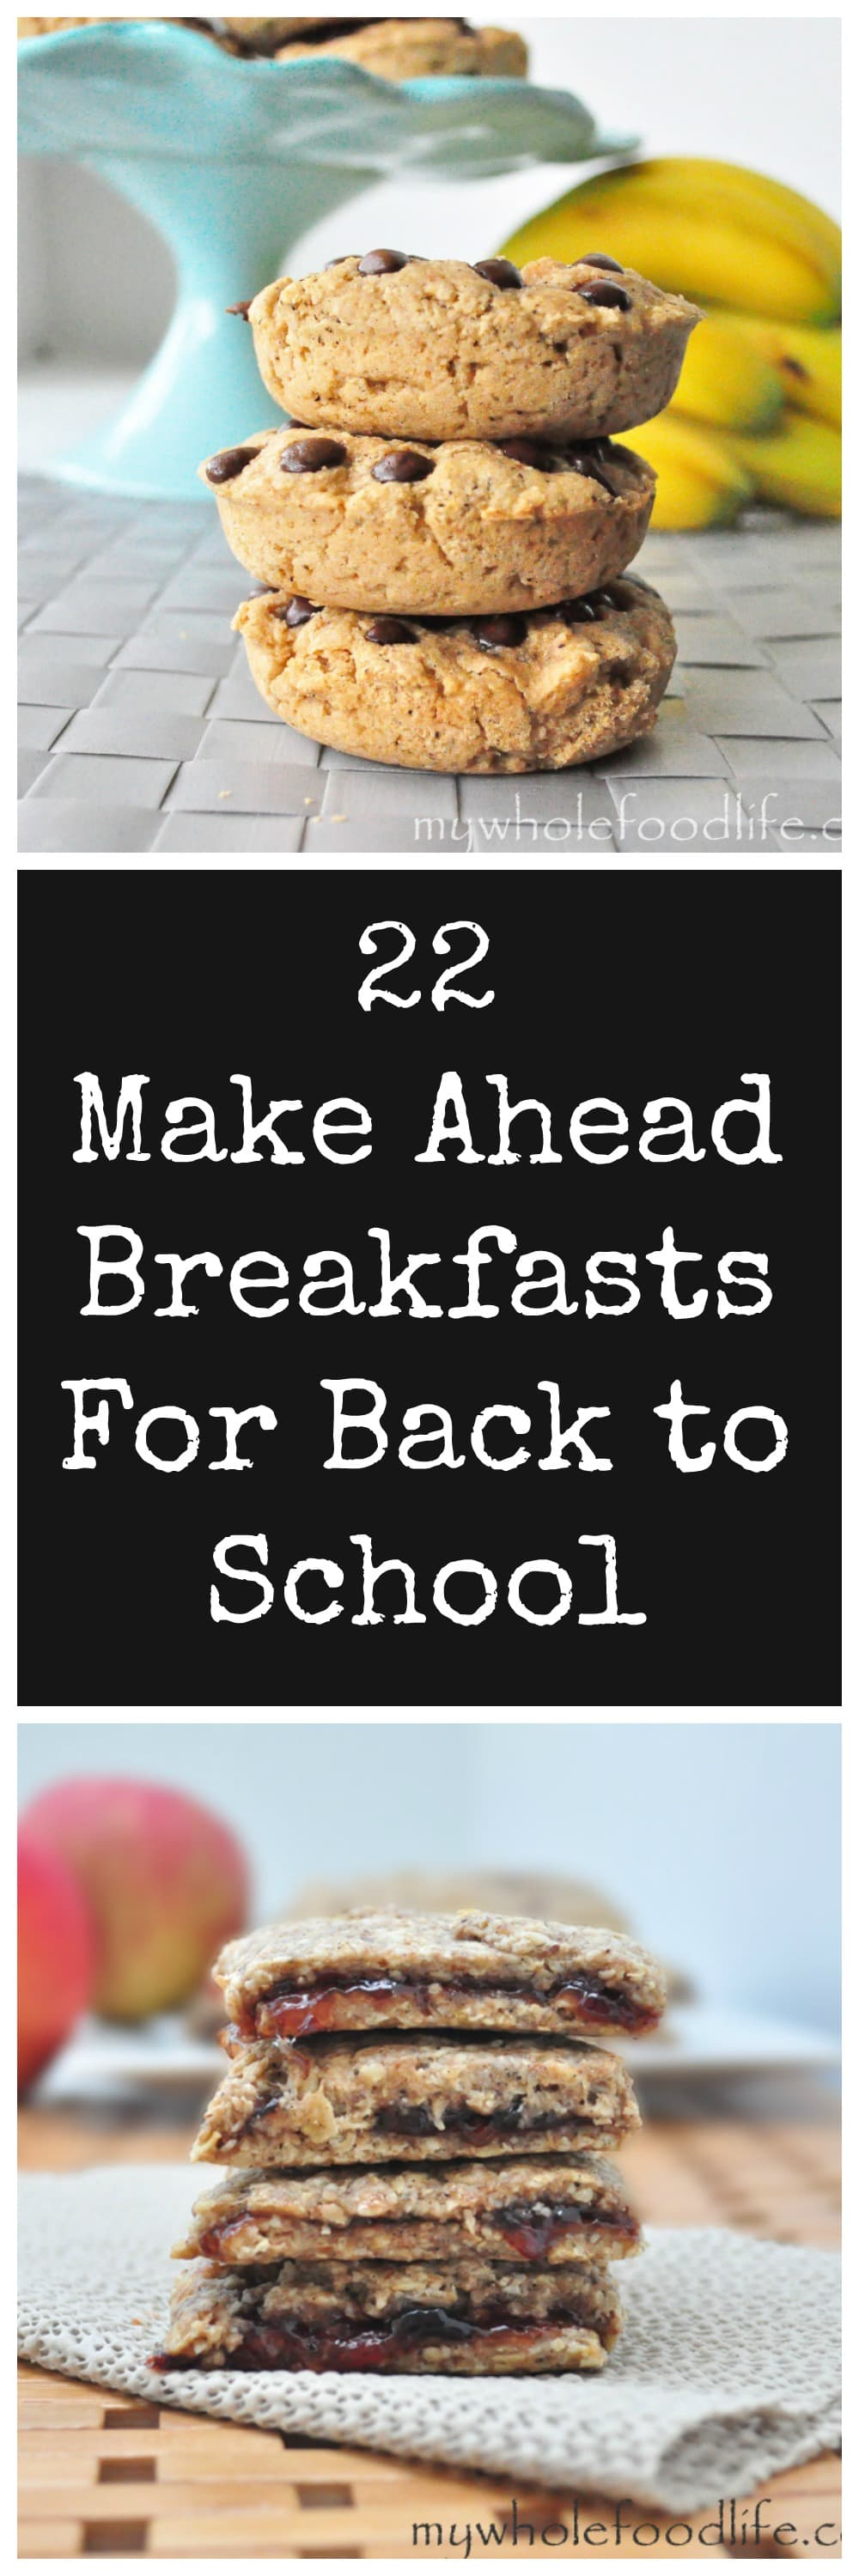 22 Make Ahead Breakfasts